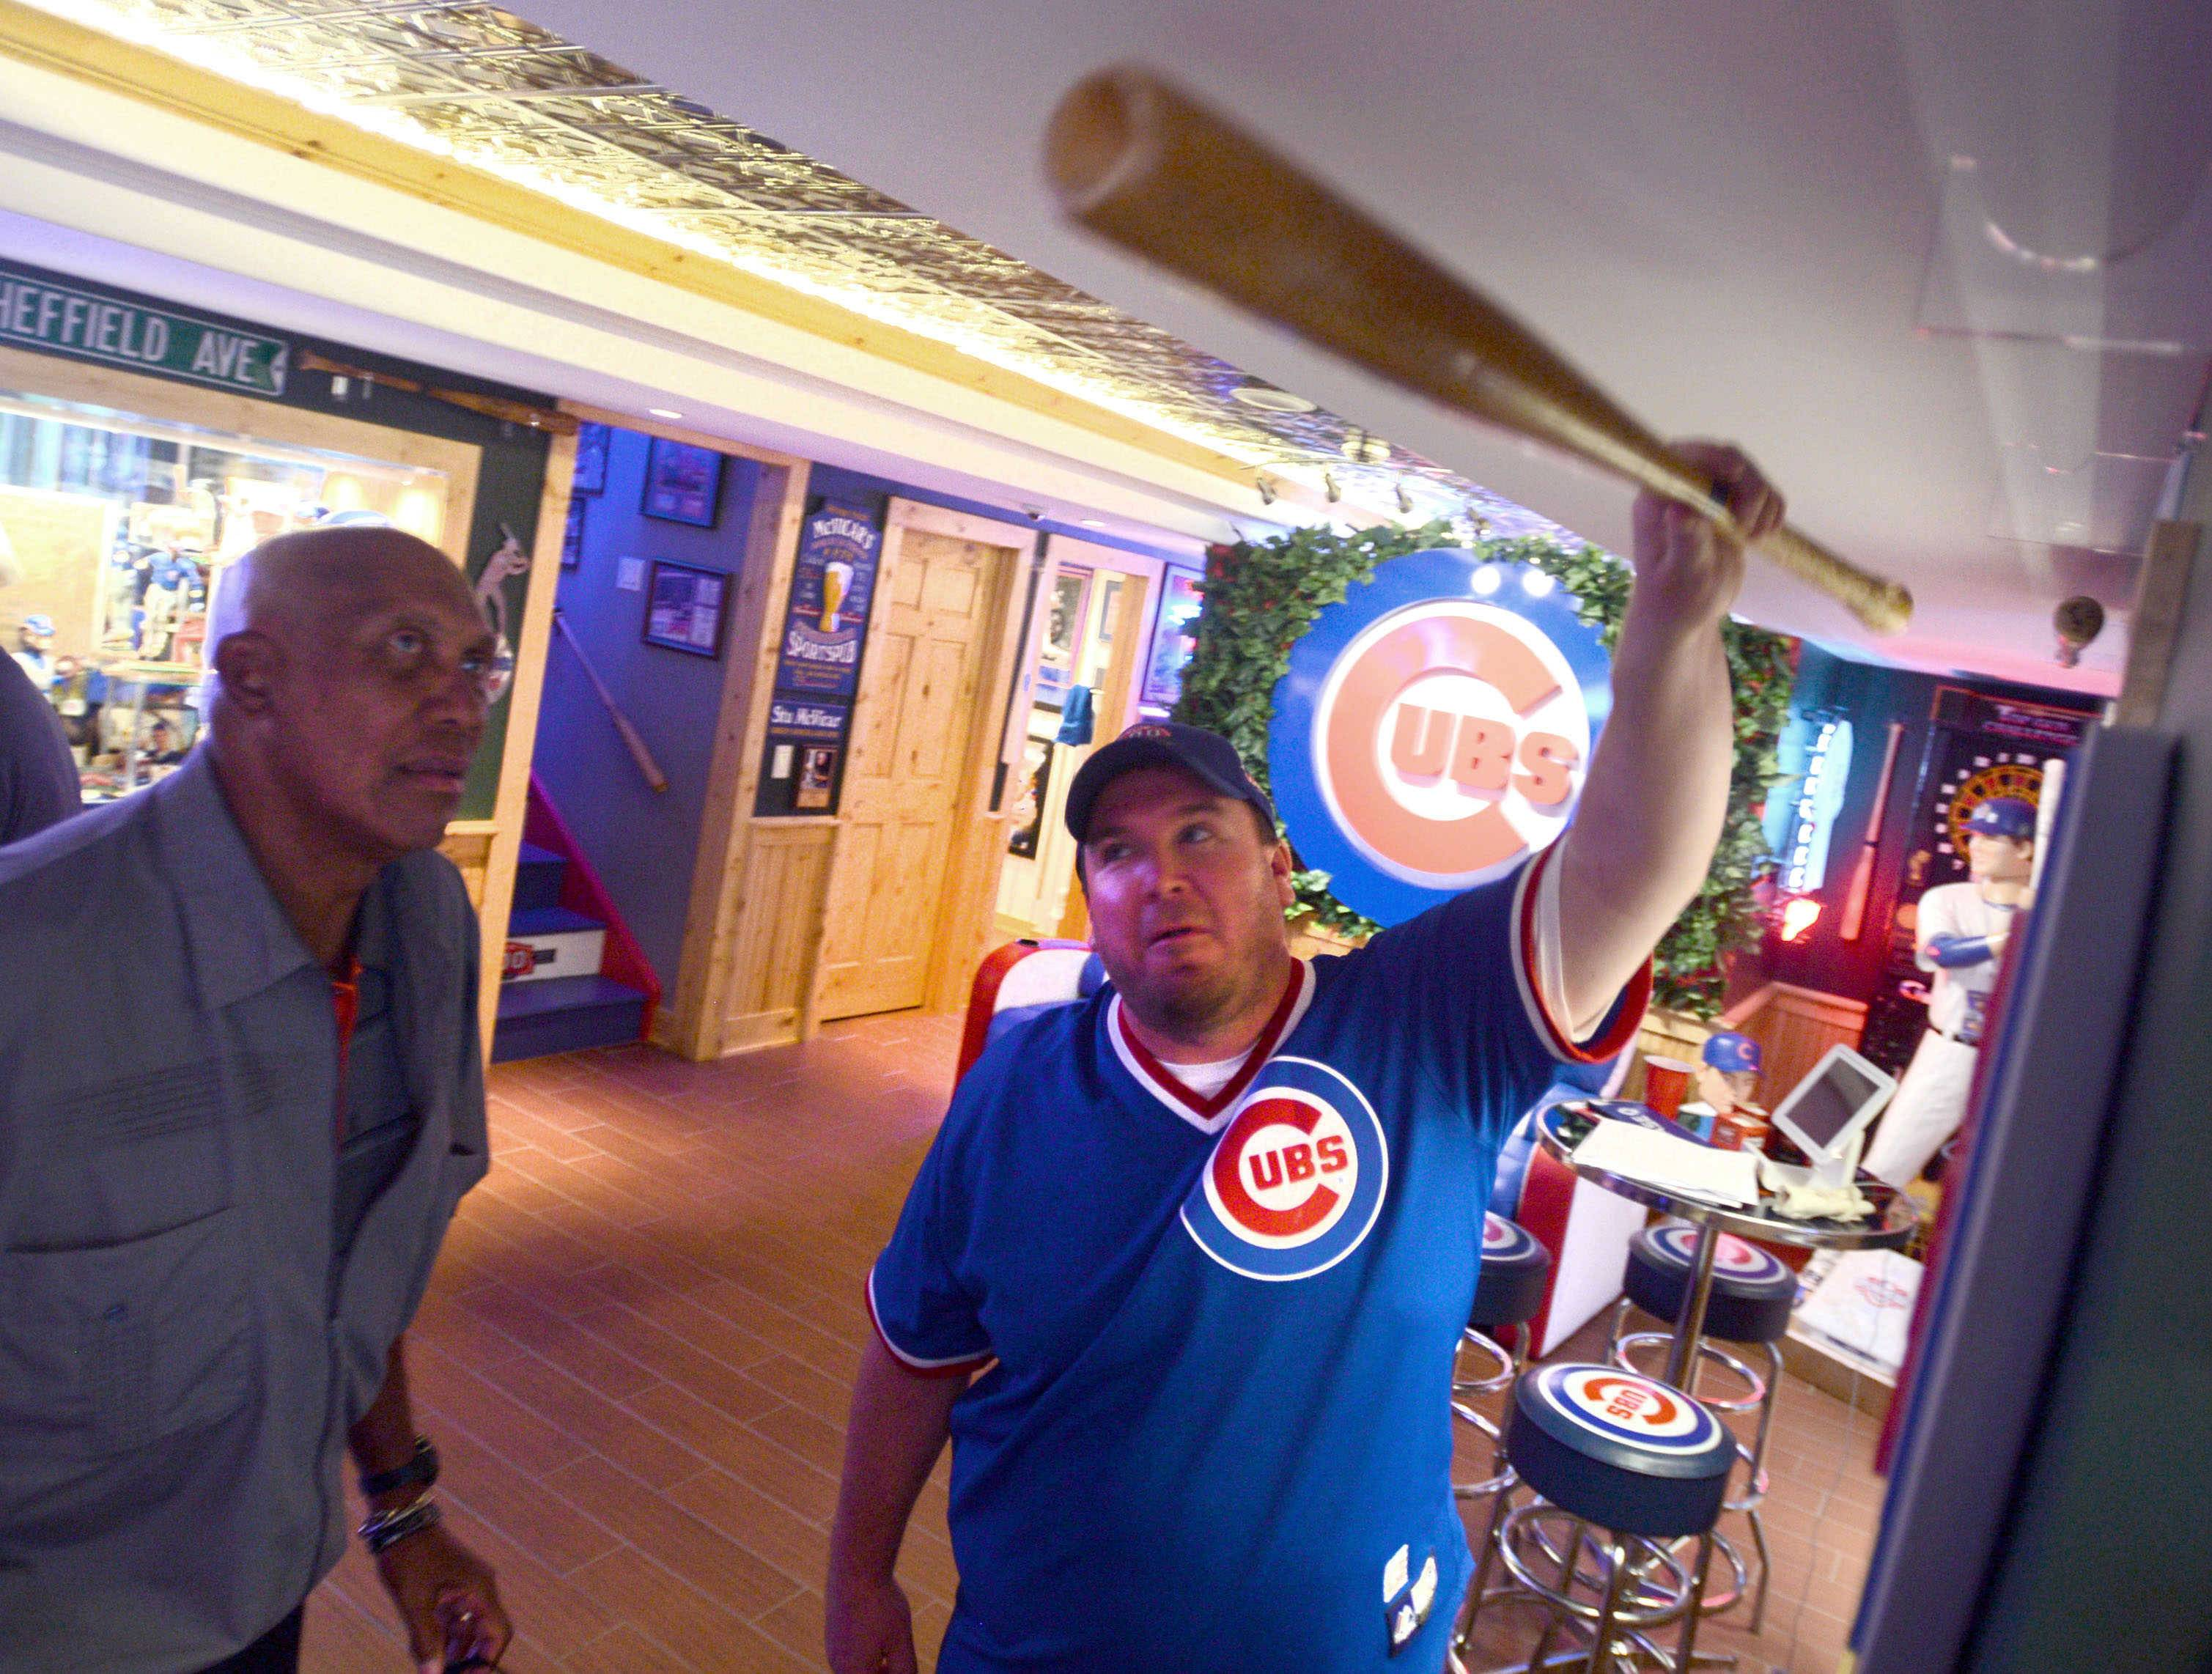 Stewart McVicar, center, hosted a party at his McHenry County home with Cubs legend and Hall-of-Famer Ferguson Jenkins in September. Here, Jenkins inspects one of his game-used bats from McVicar's memorabilia collection, which is displayed in McVicar's man cave.